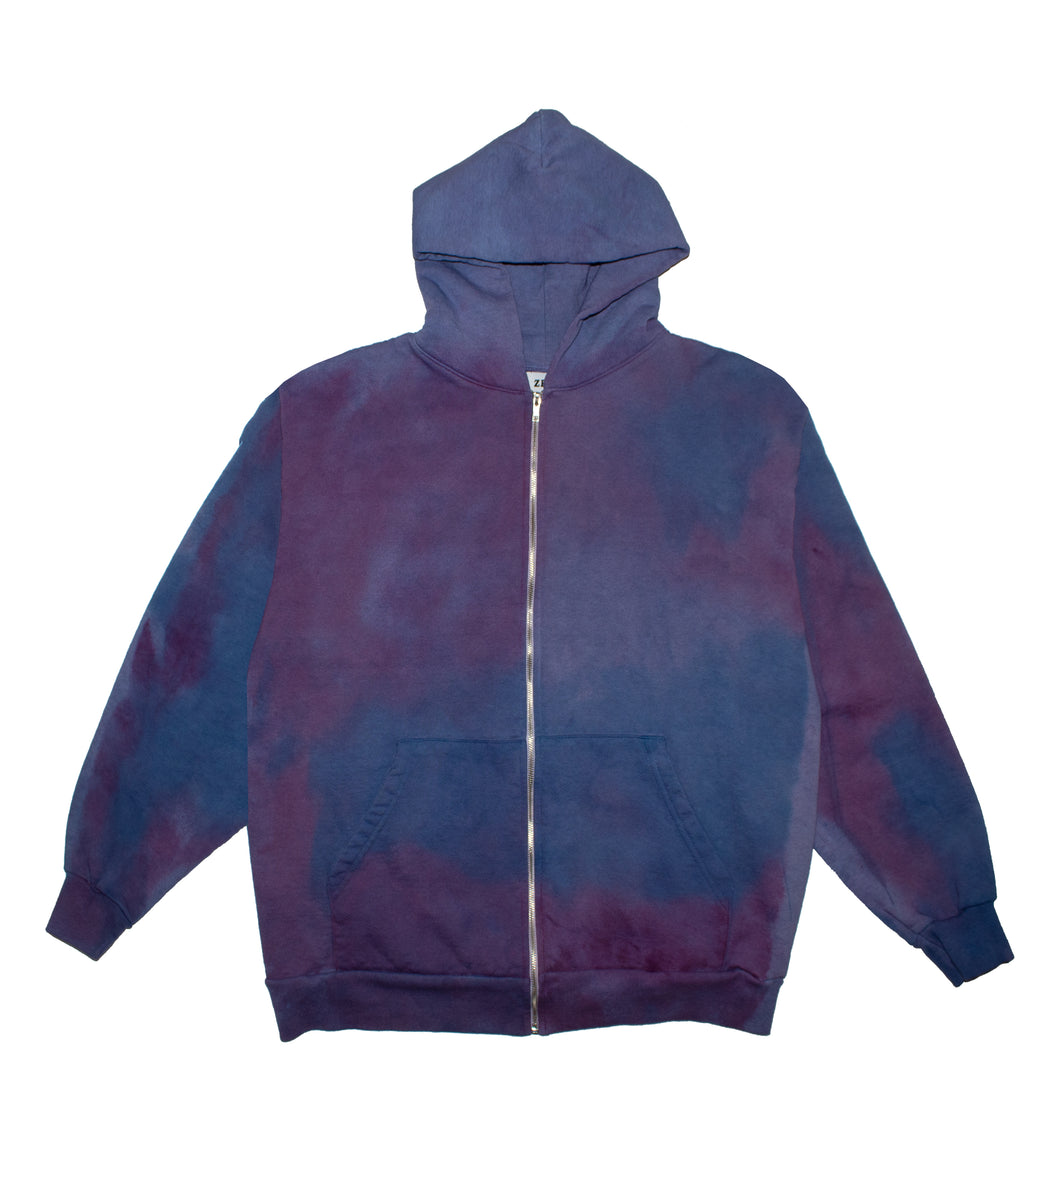 Hand Dyed Multi Color Zip-Up Hoodie - XL